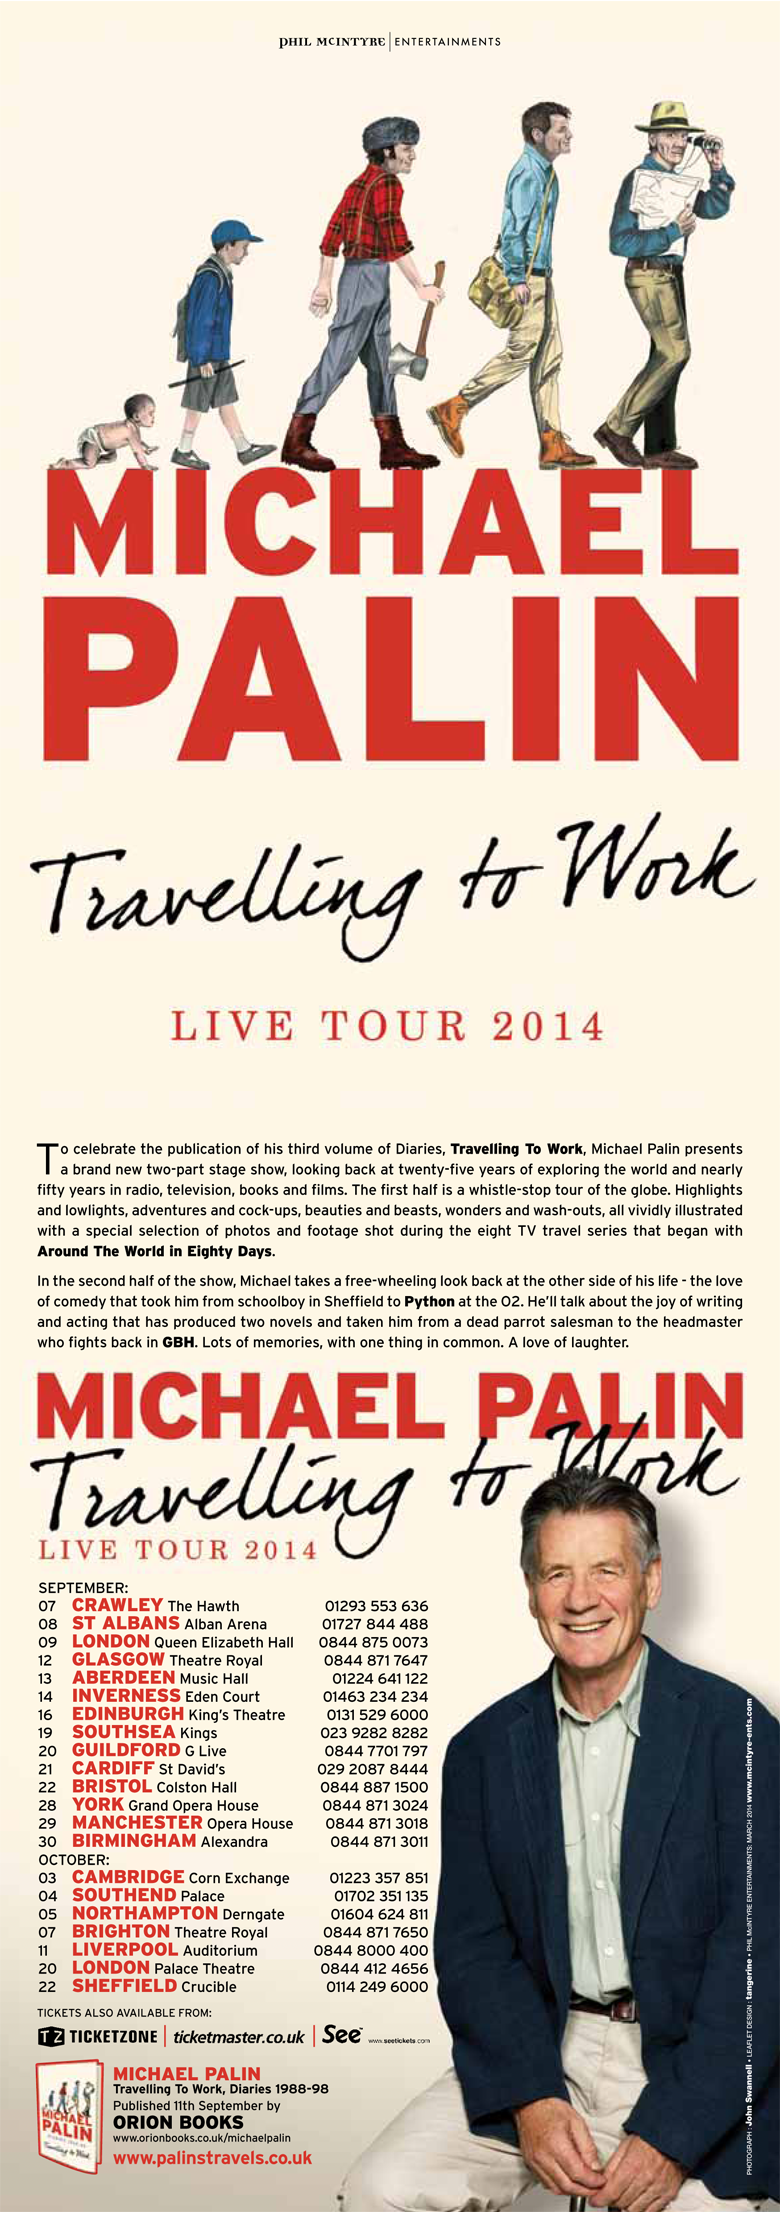 Michael Palin's Travelling to Work